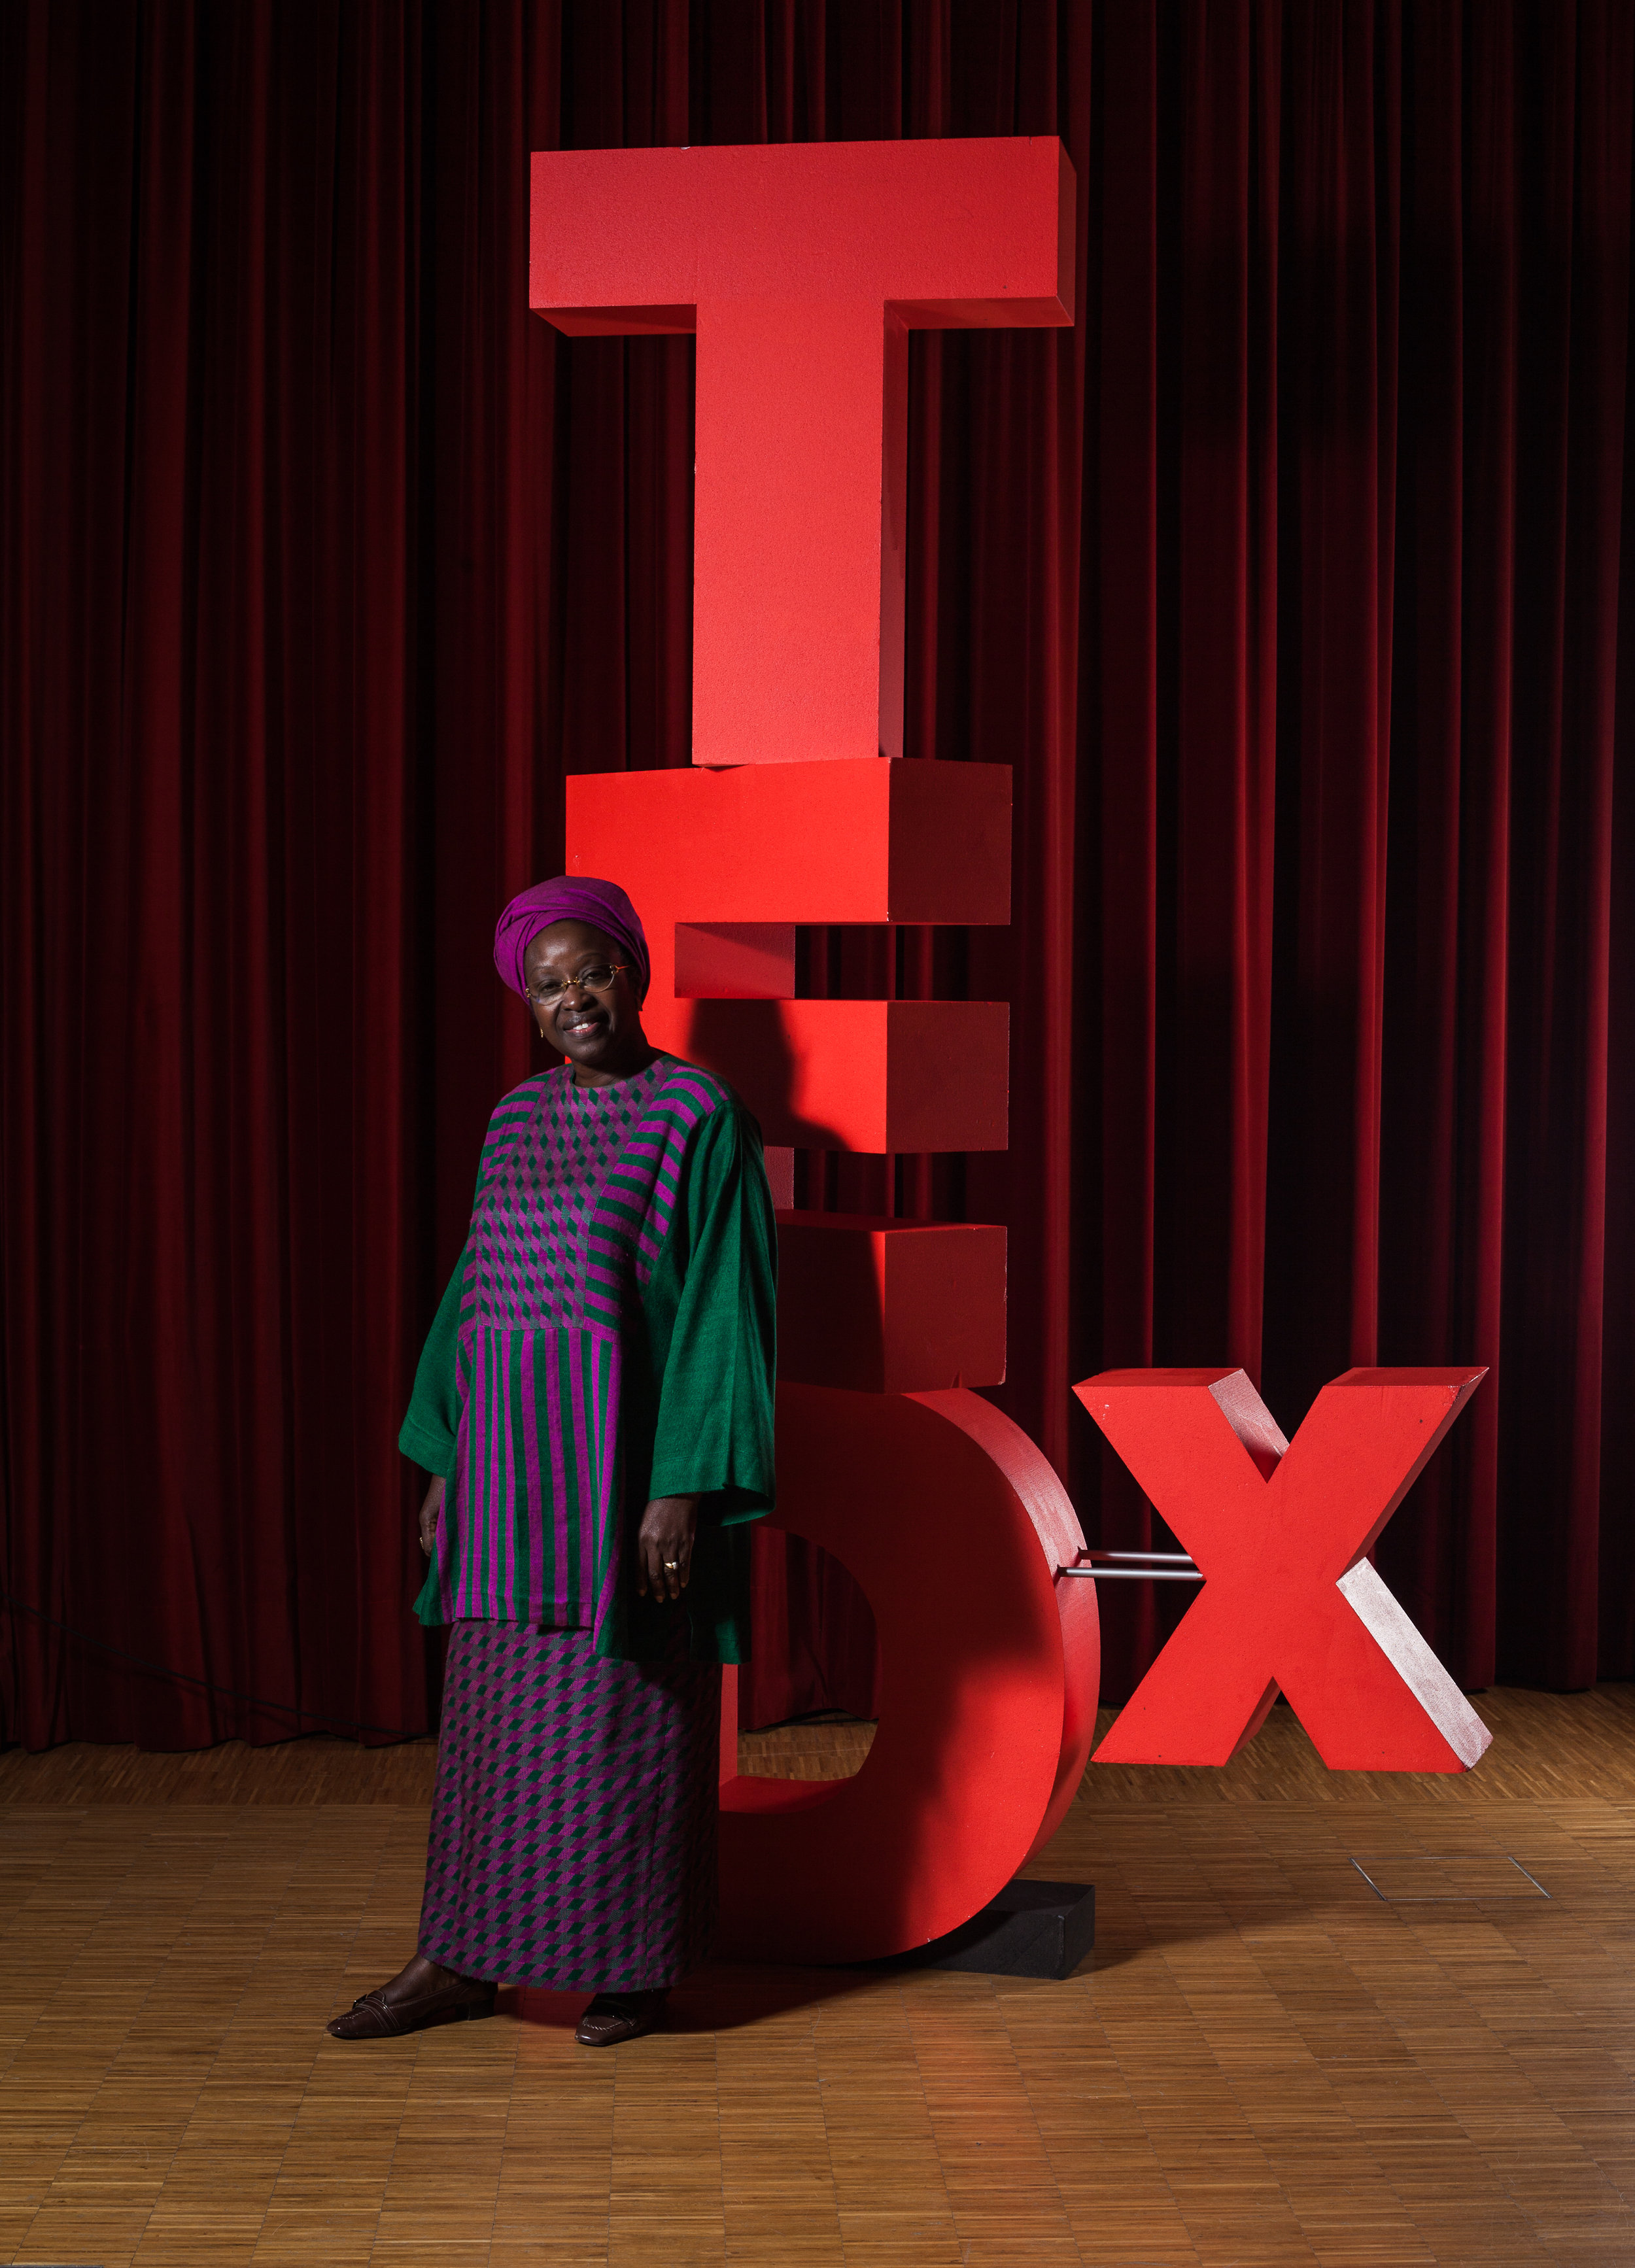 TEDxMartigny is one of the best initiative to share and discover new ideas. Today, Martigny is the center of the world.- Bineta Diop -